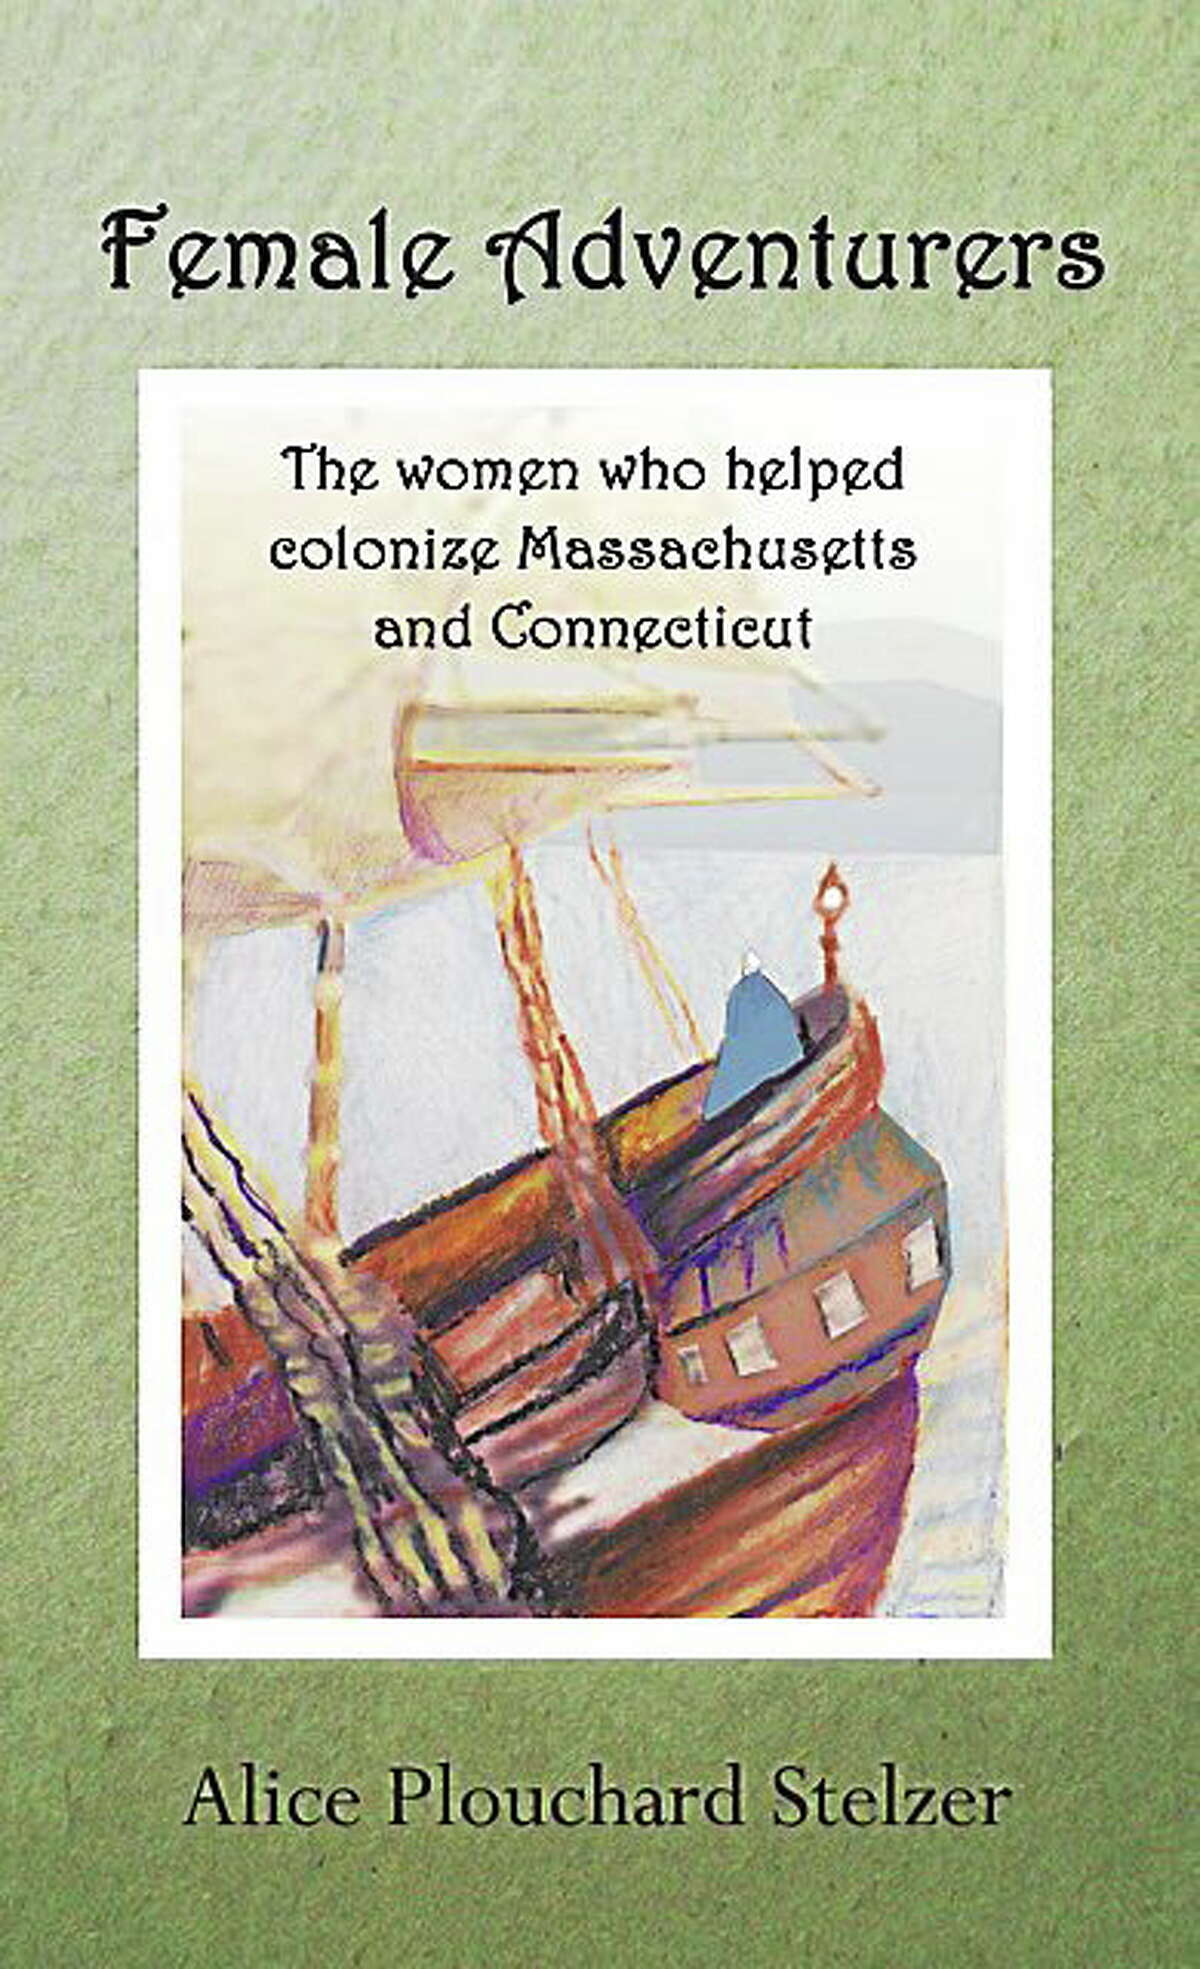 Alice Plouchard Stelzer is the author of Female Adventurers, a book highlighting the lives of 12 Puritan women in Massachusetts and Connecticut.